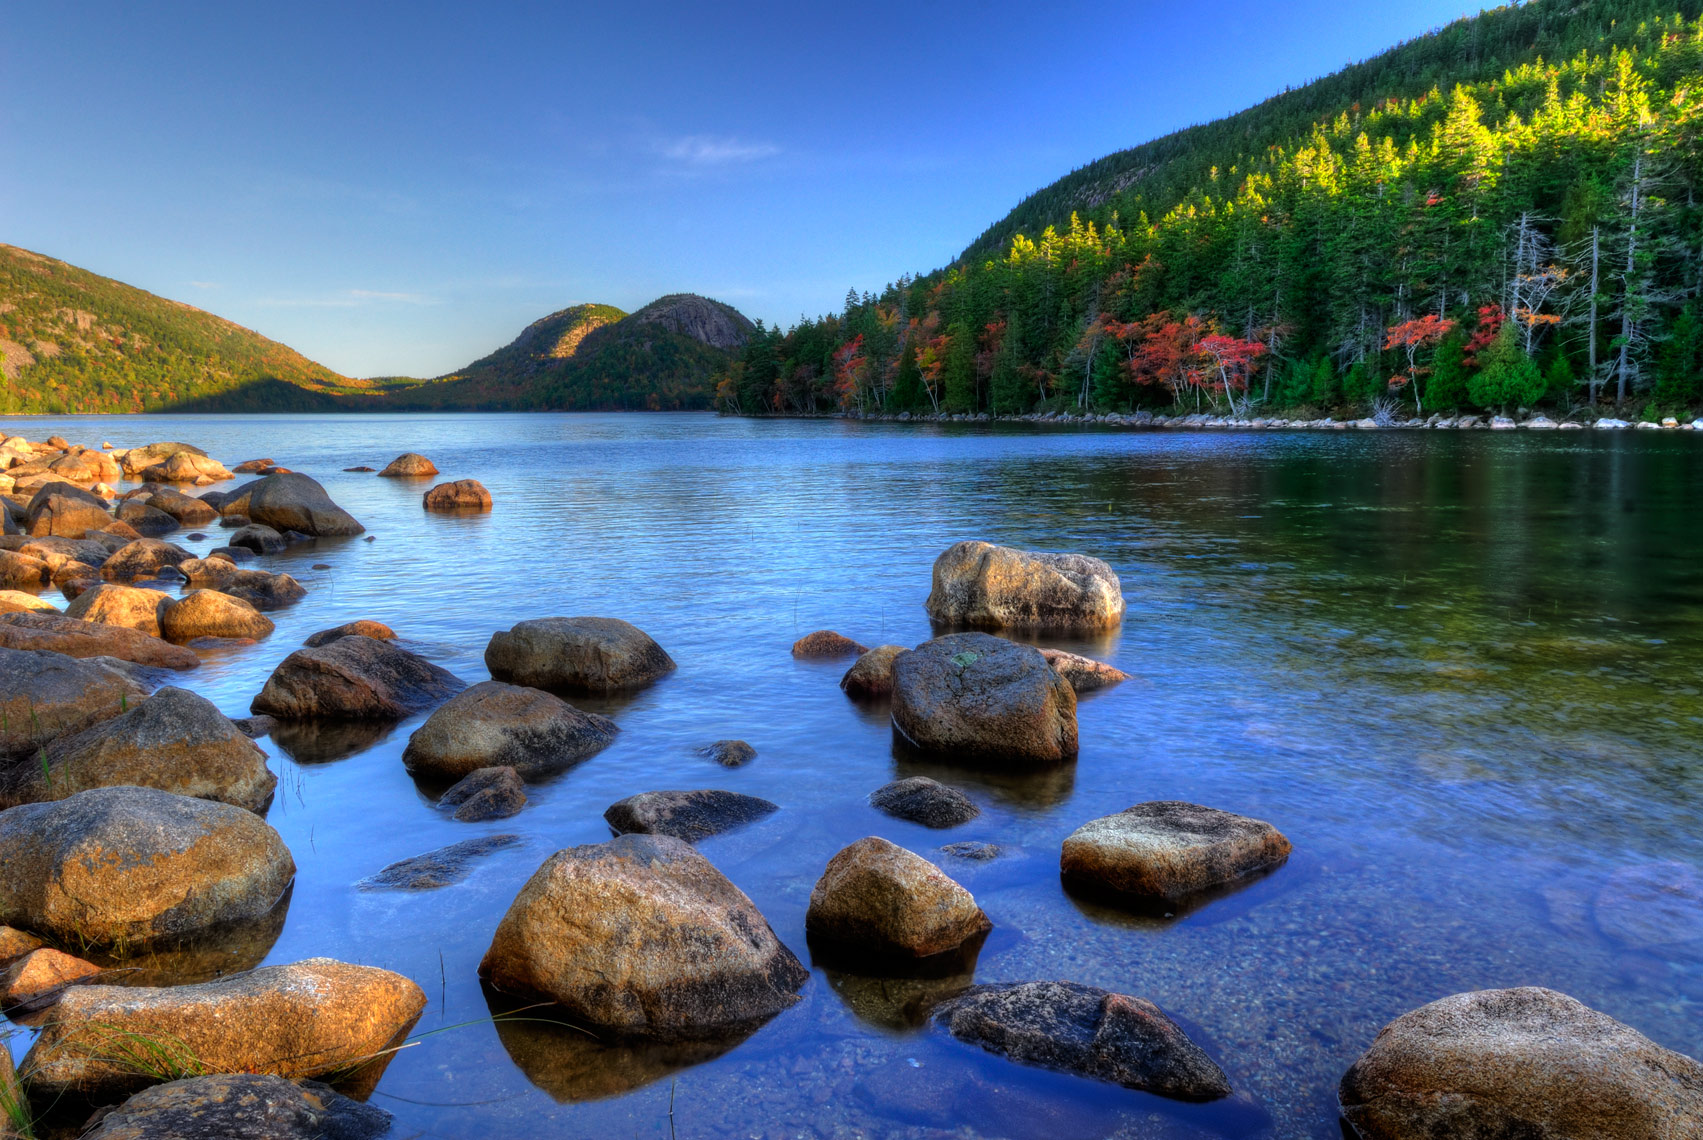 Autumn morning along Jordan Pond, Acadia National Park, Maine